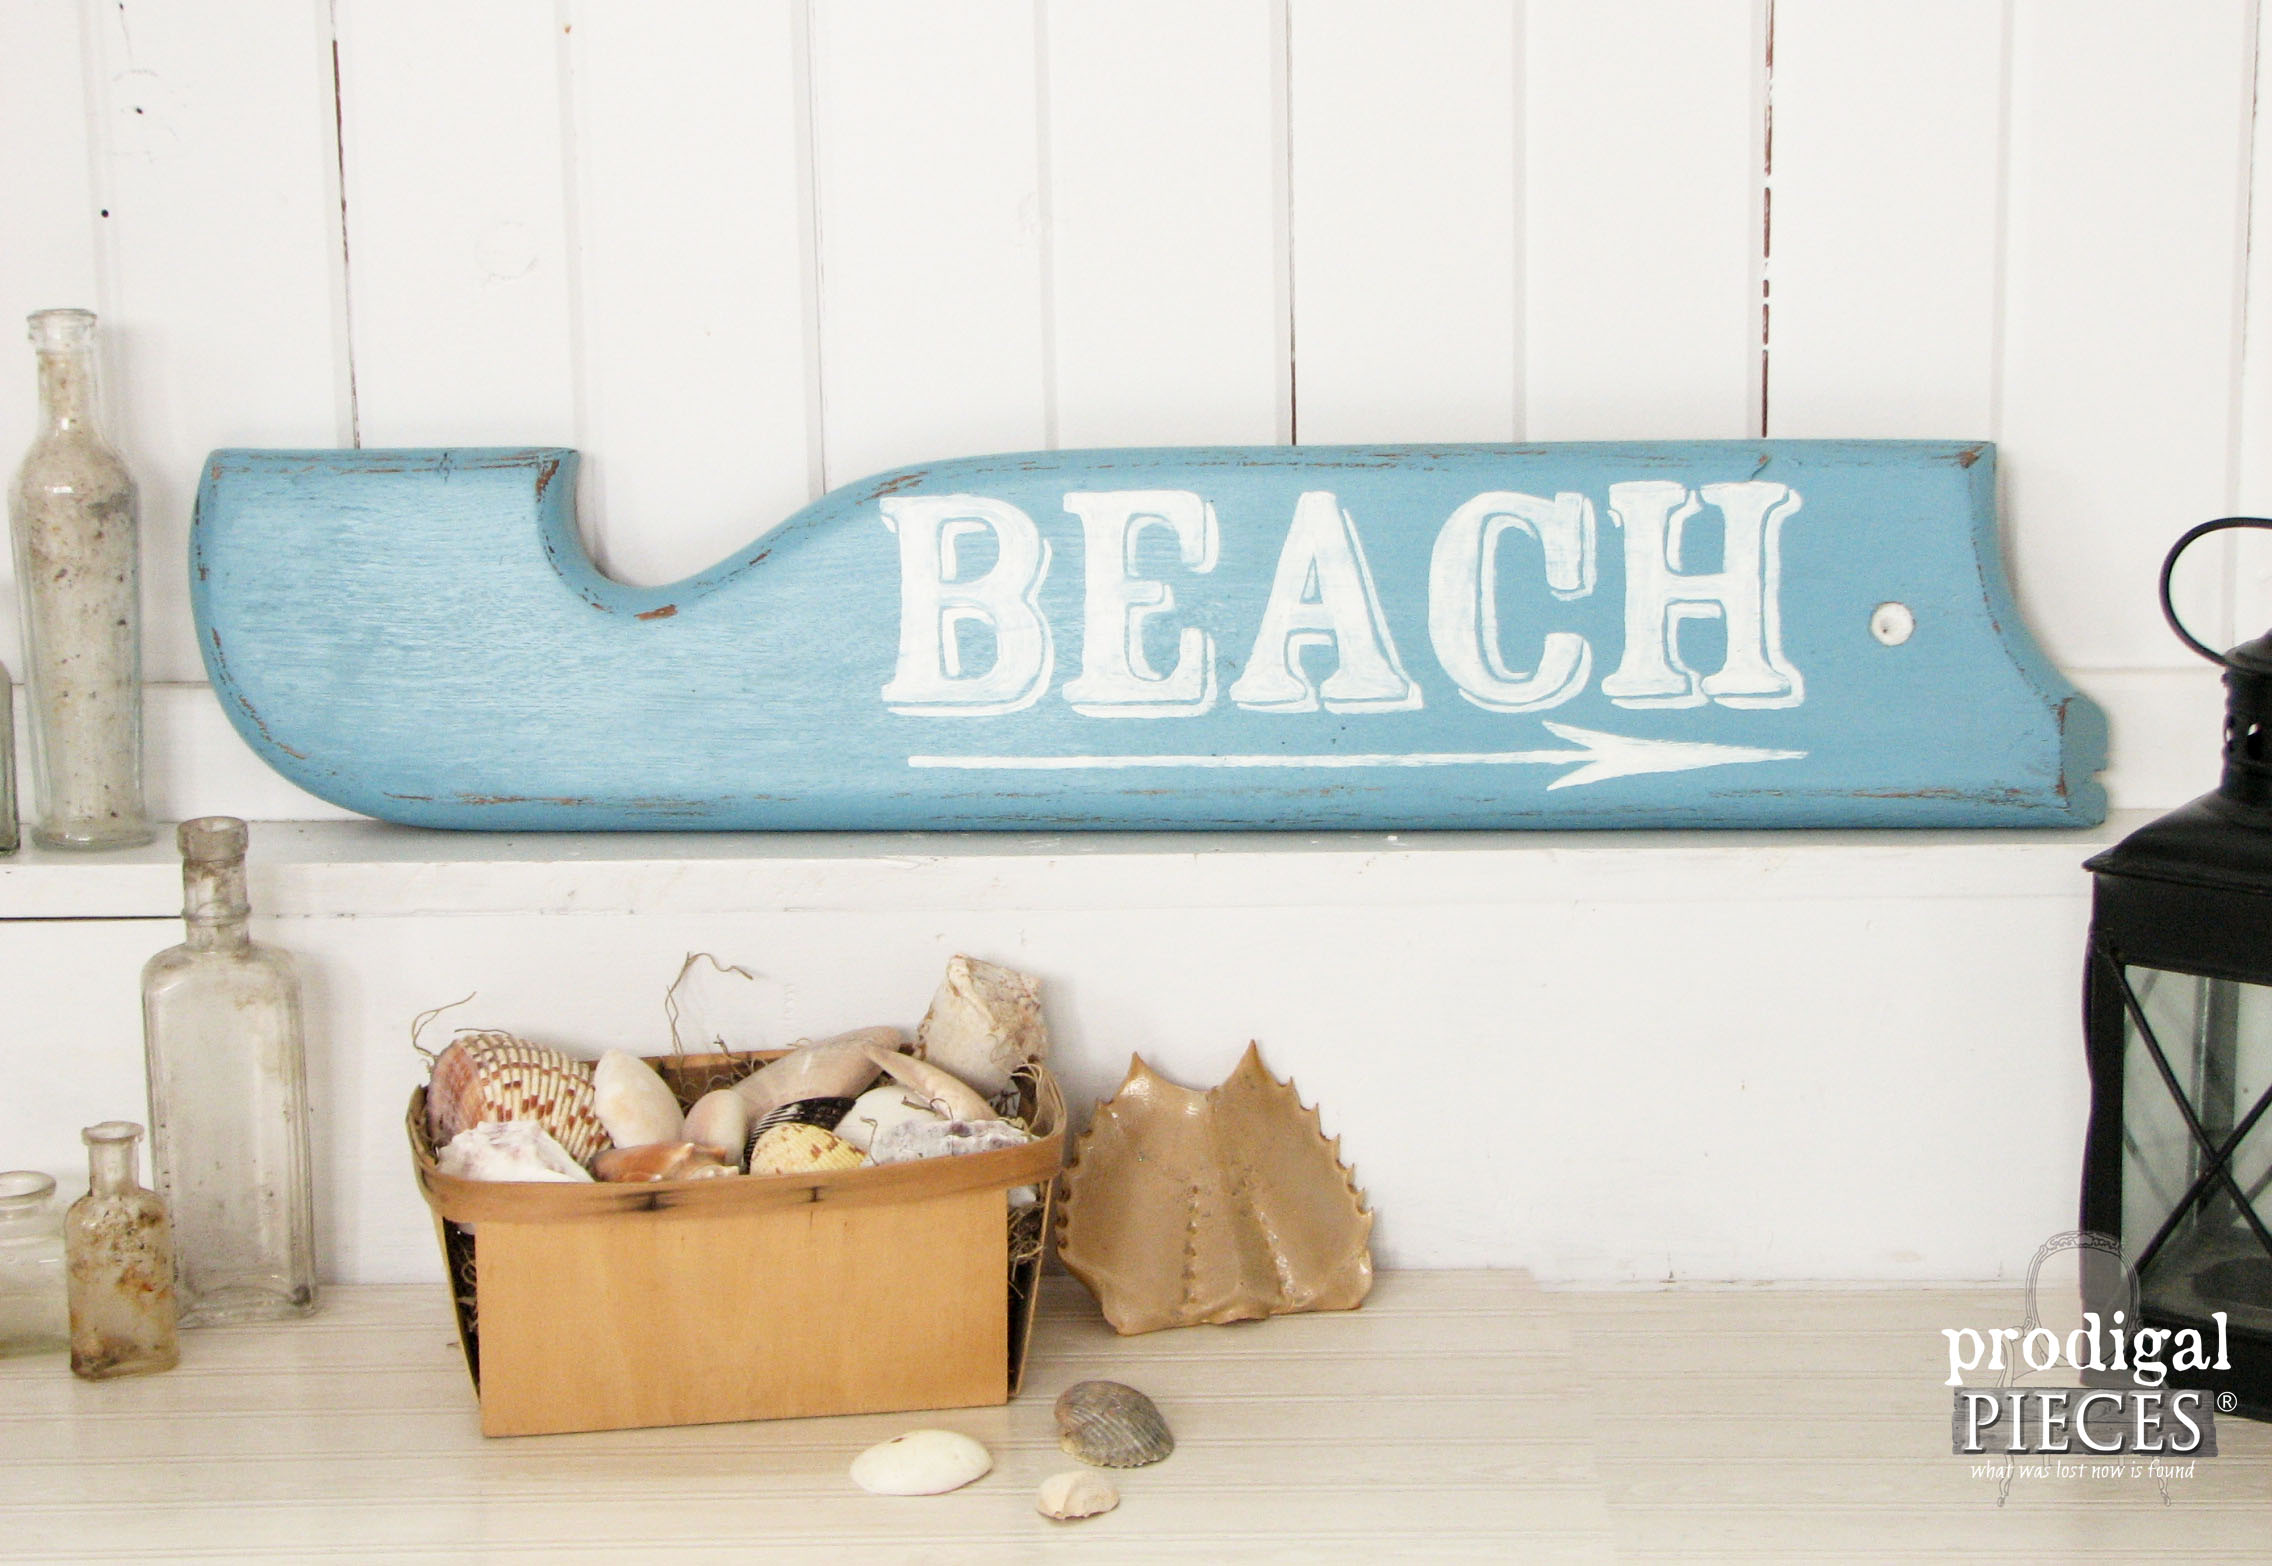 Repurposed Beach Directional Sign from Rocker Arm by Prodigal Pieces | www.prodigalpieces.com